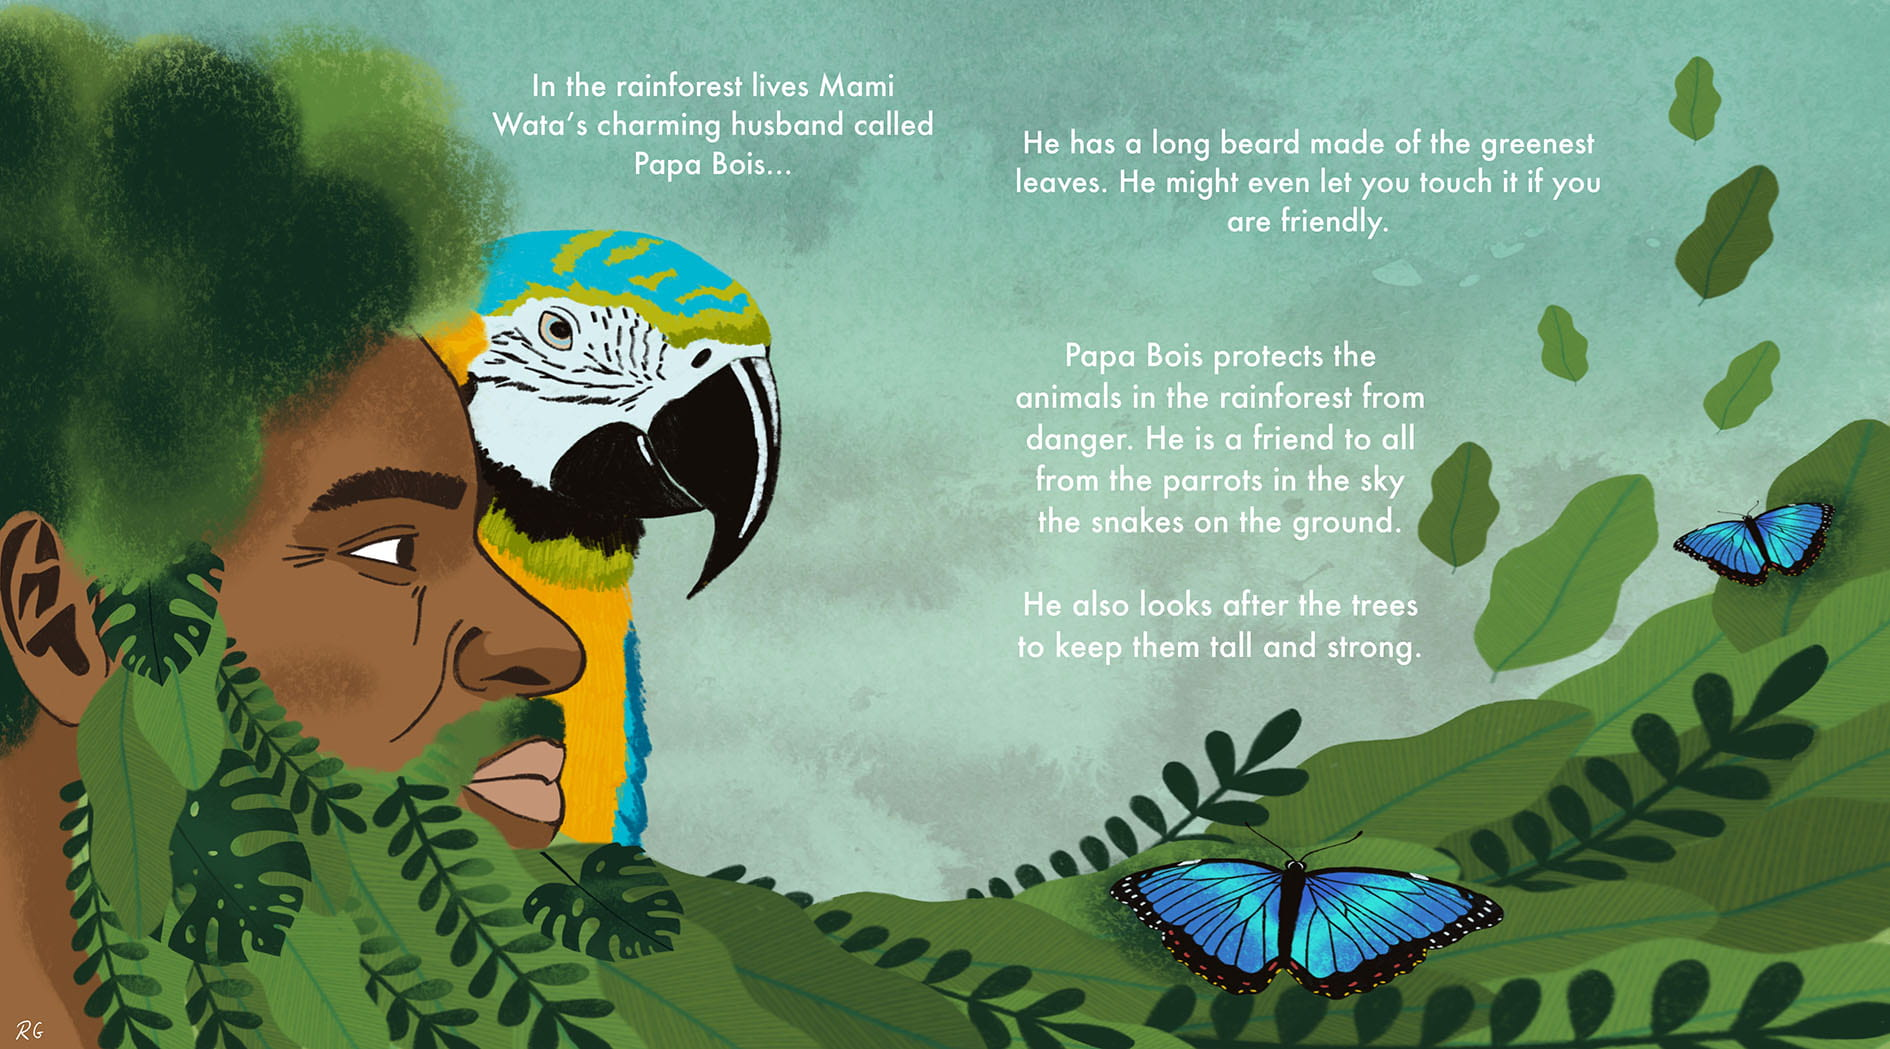 Digital image of a double page spread showing the side profile of a character and a parrot.